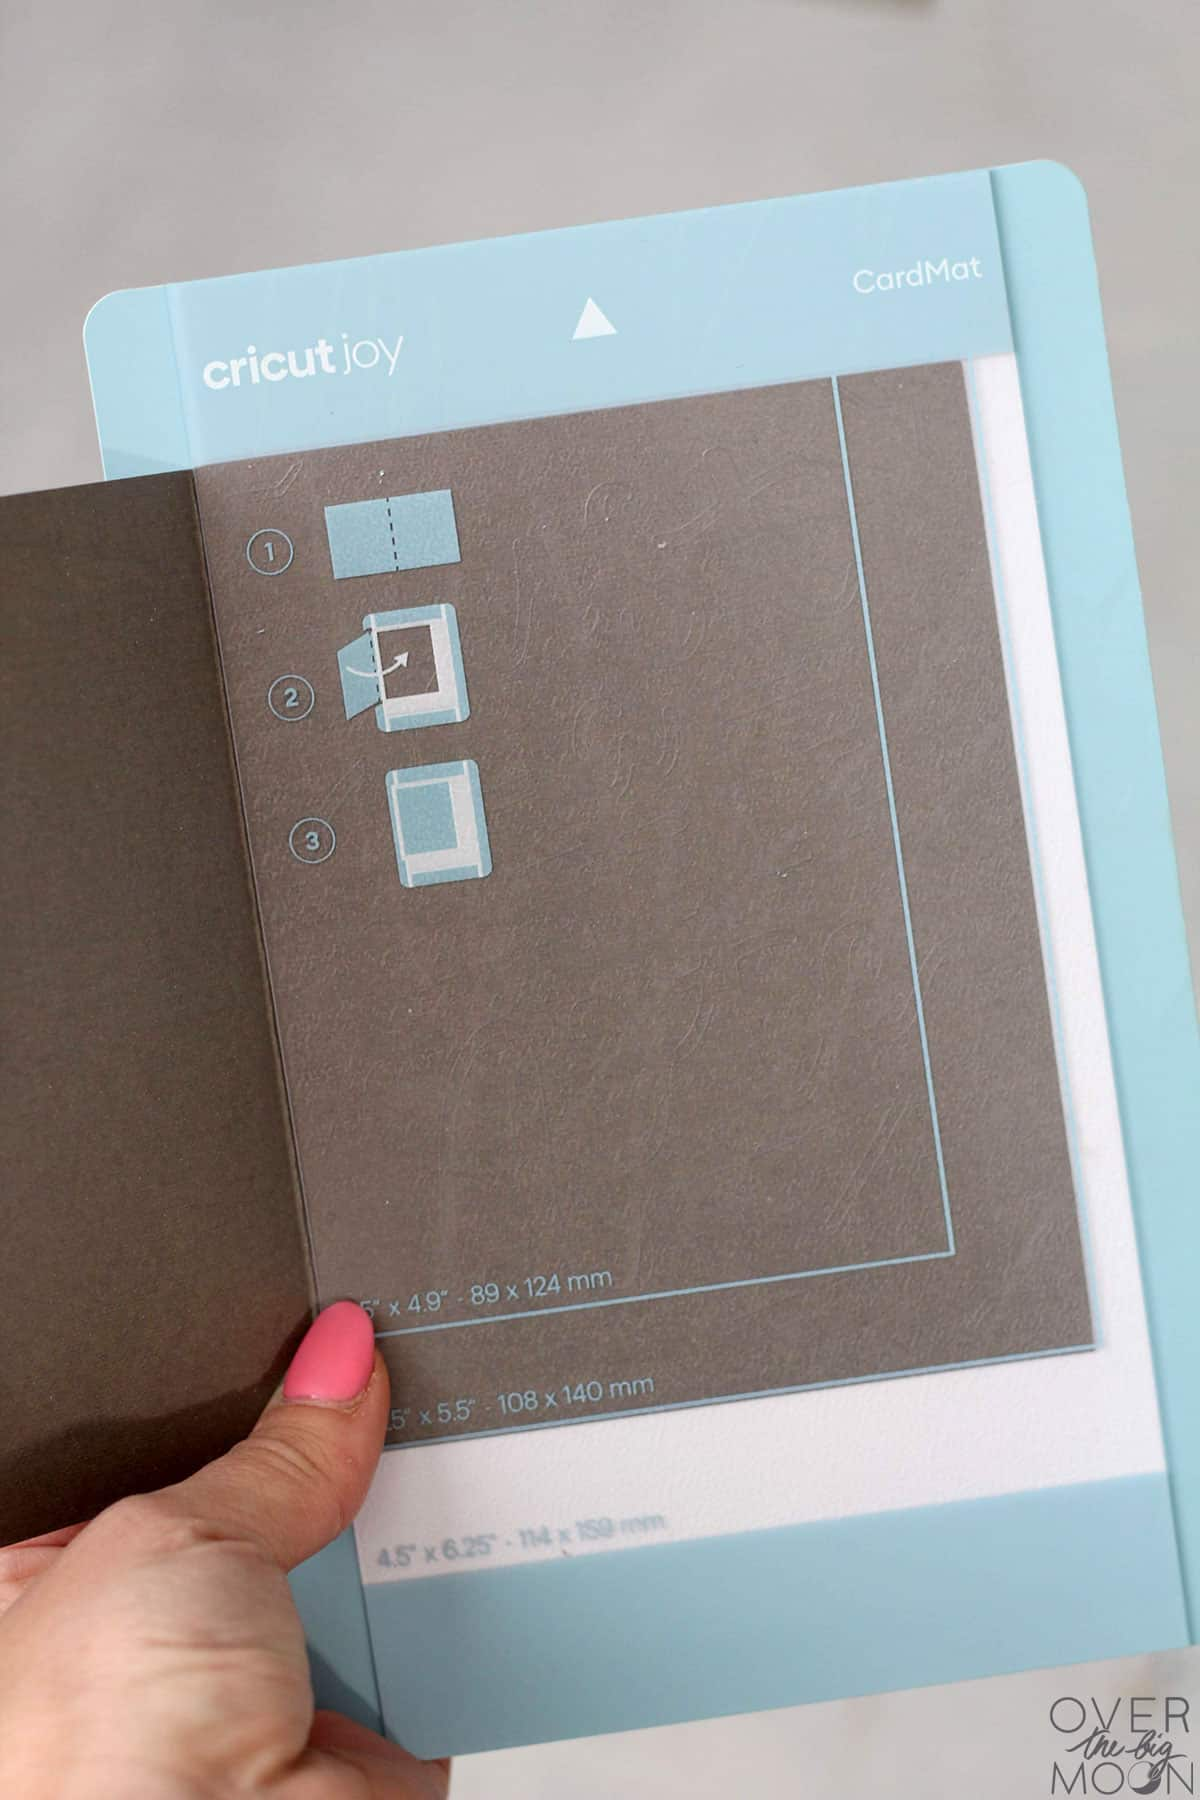 Cricut Joy Card Mat with a gray card inserted into it.